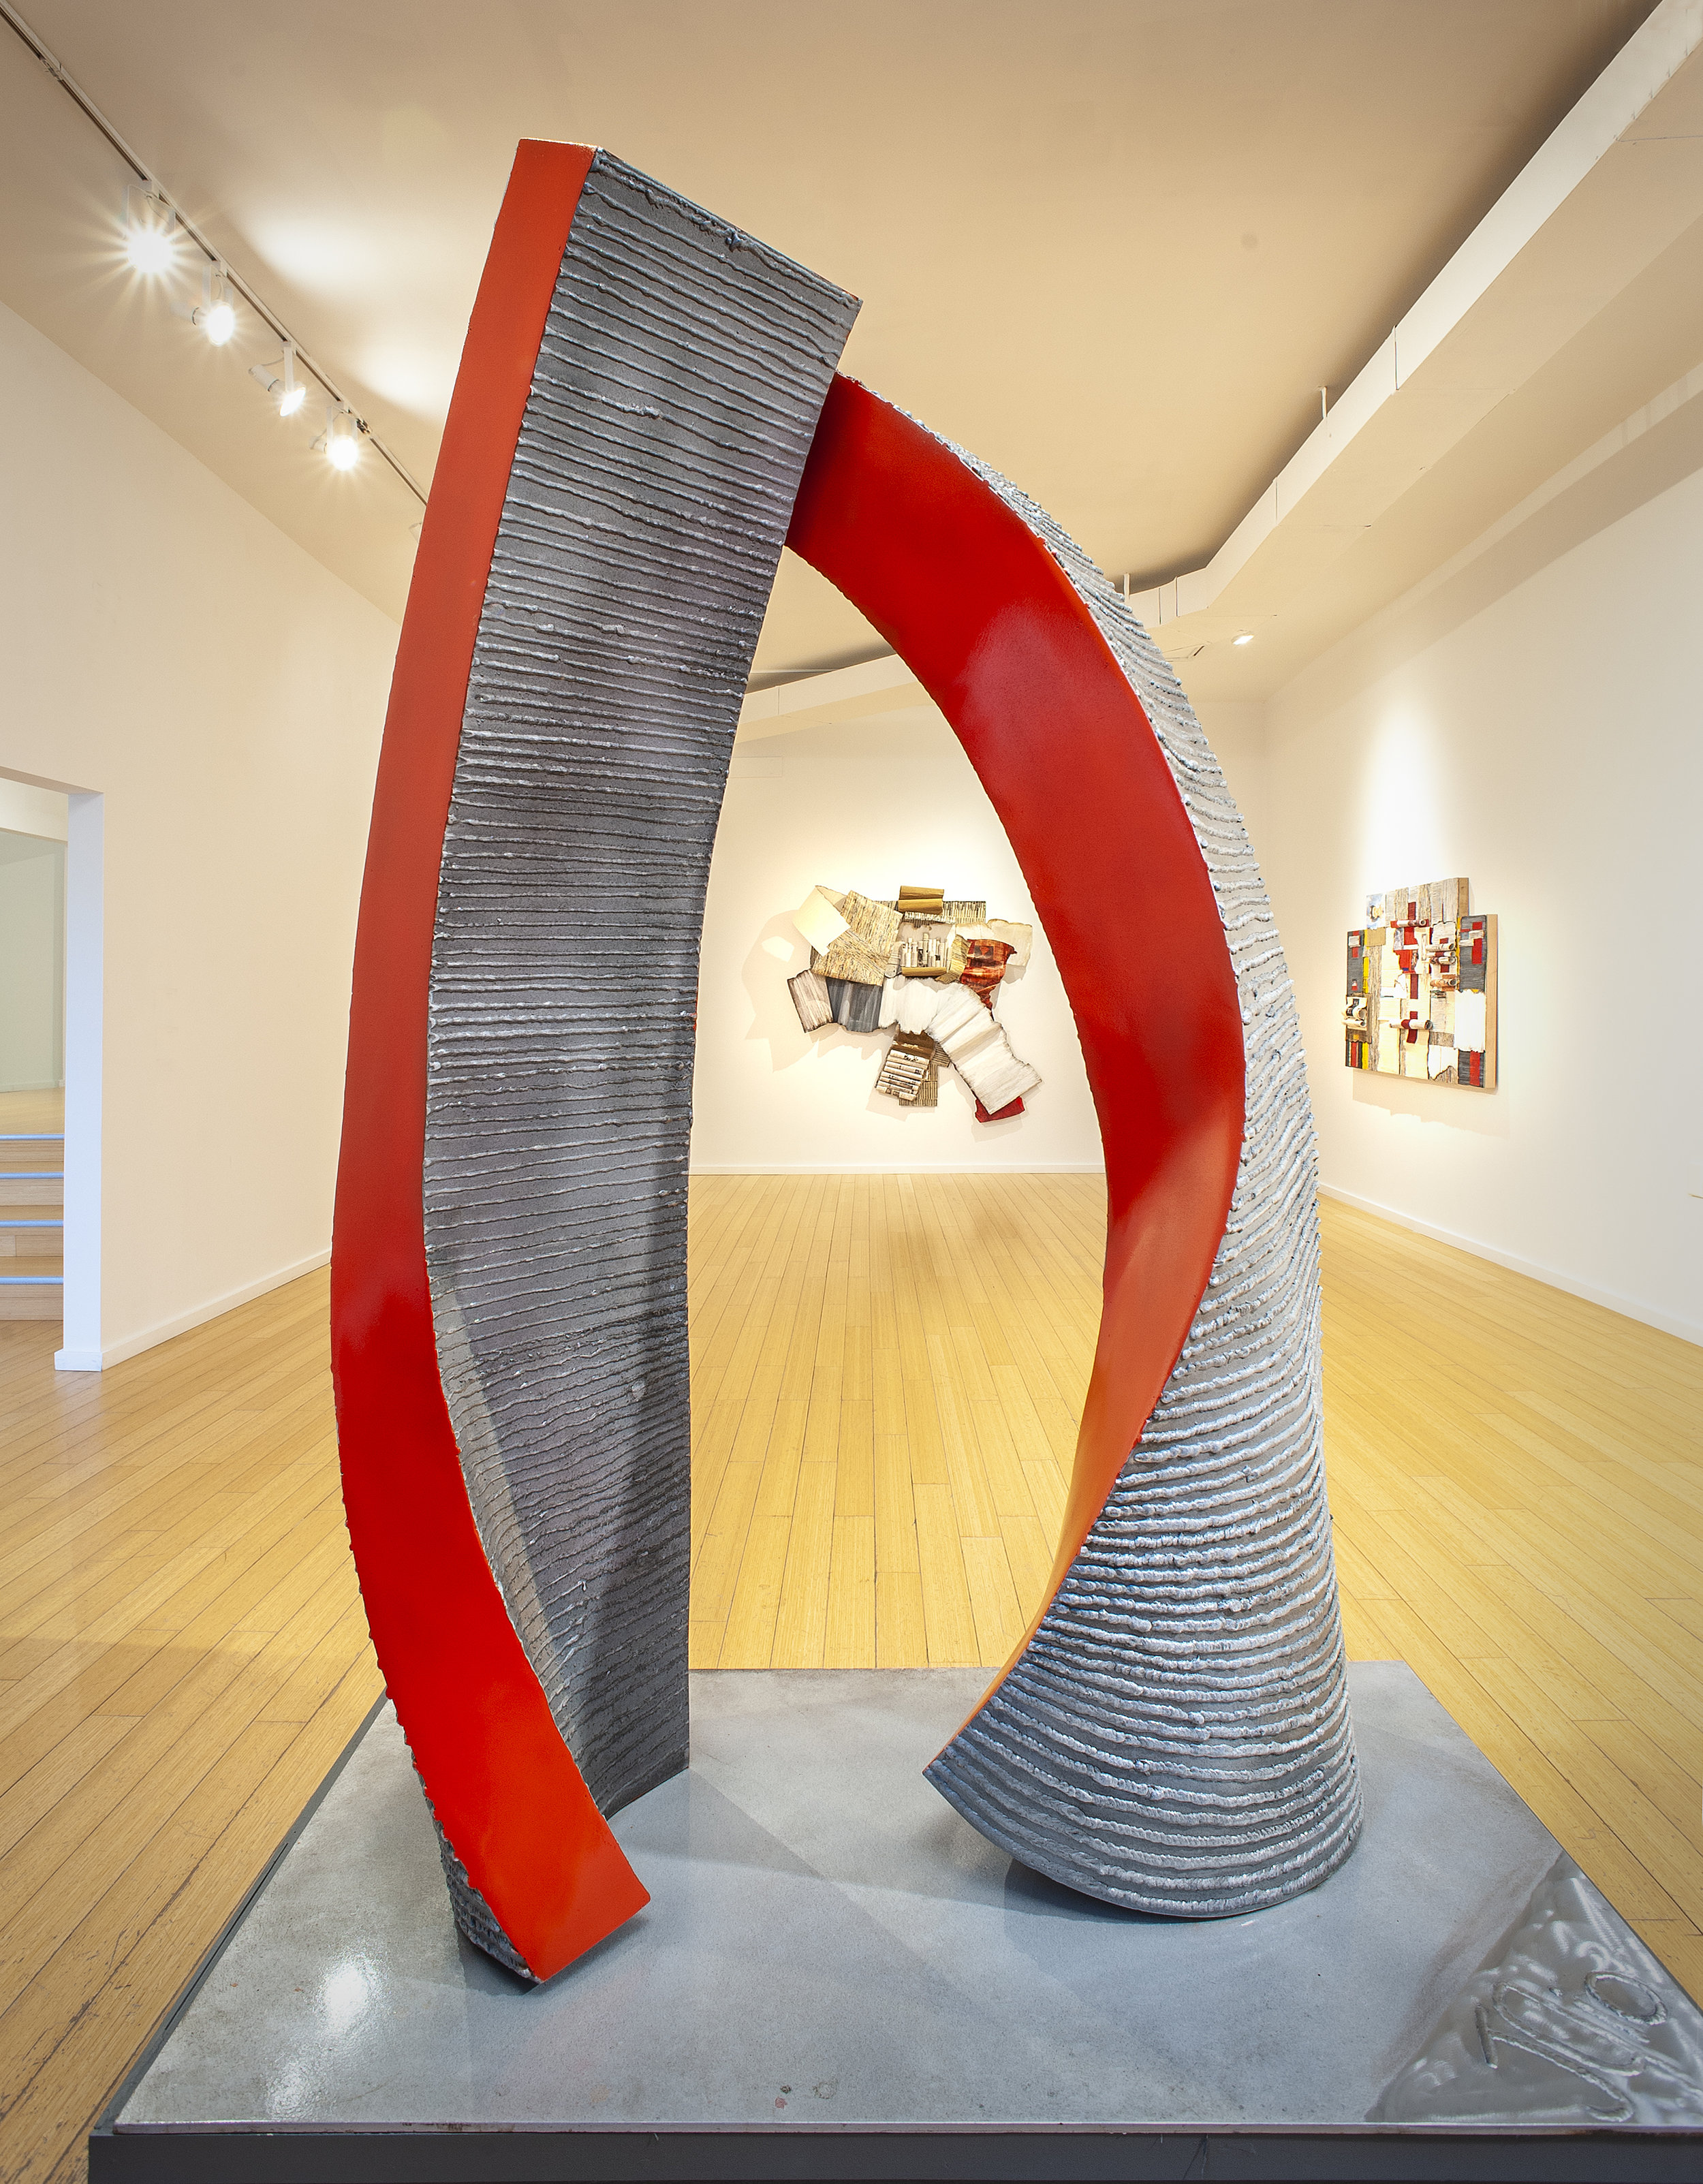 Joan Giordano: Overview 1993-2018, Catskill Art Society (CAS), September 1 - October 27, 2018